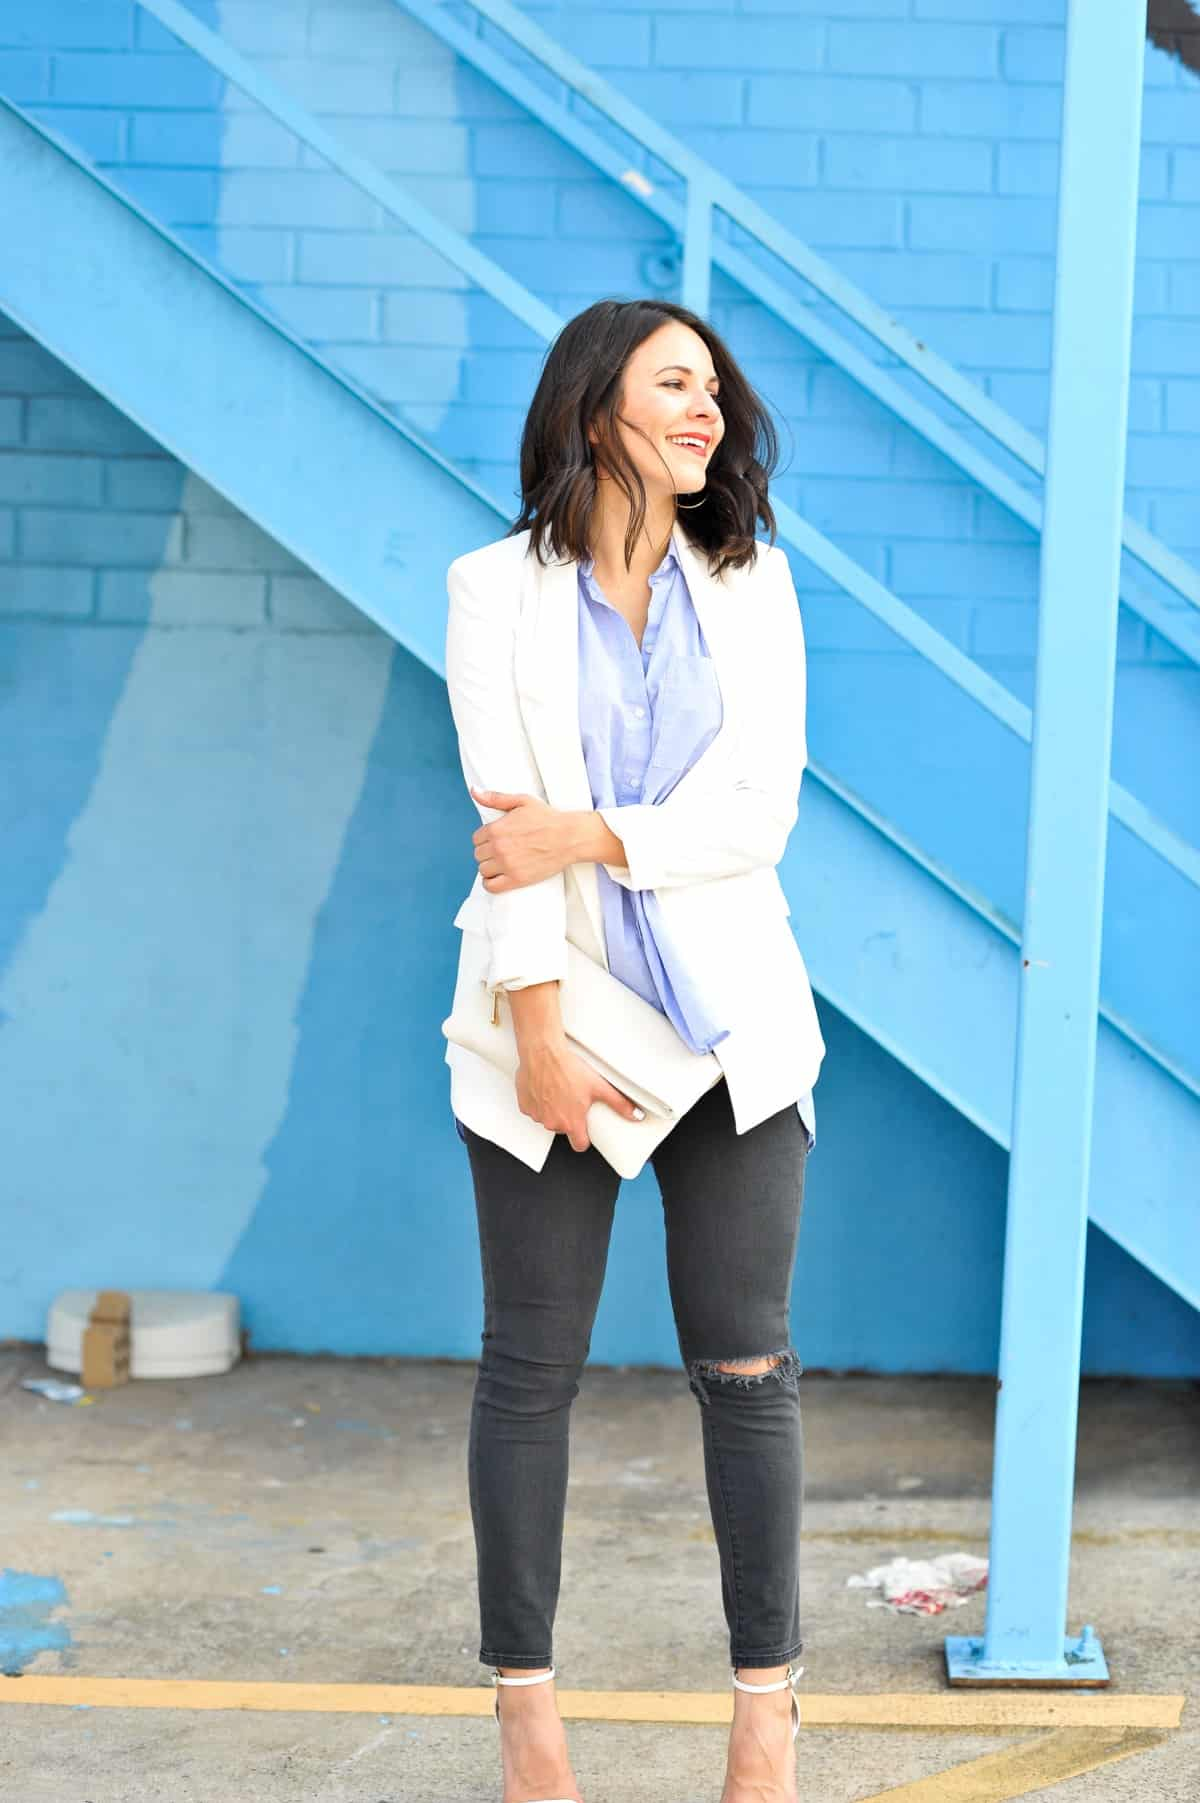 date night outfit ideas, casual office outfits - My Style Vita @mystylevita